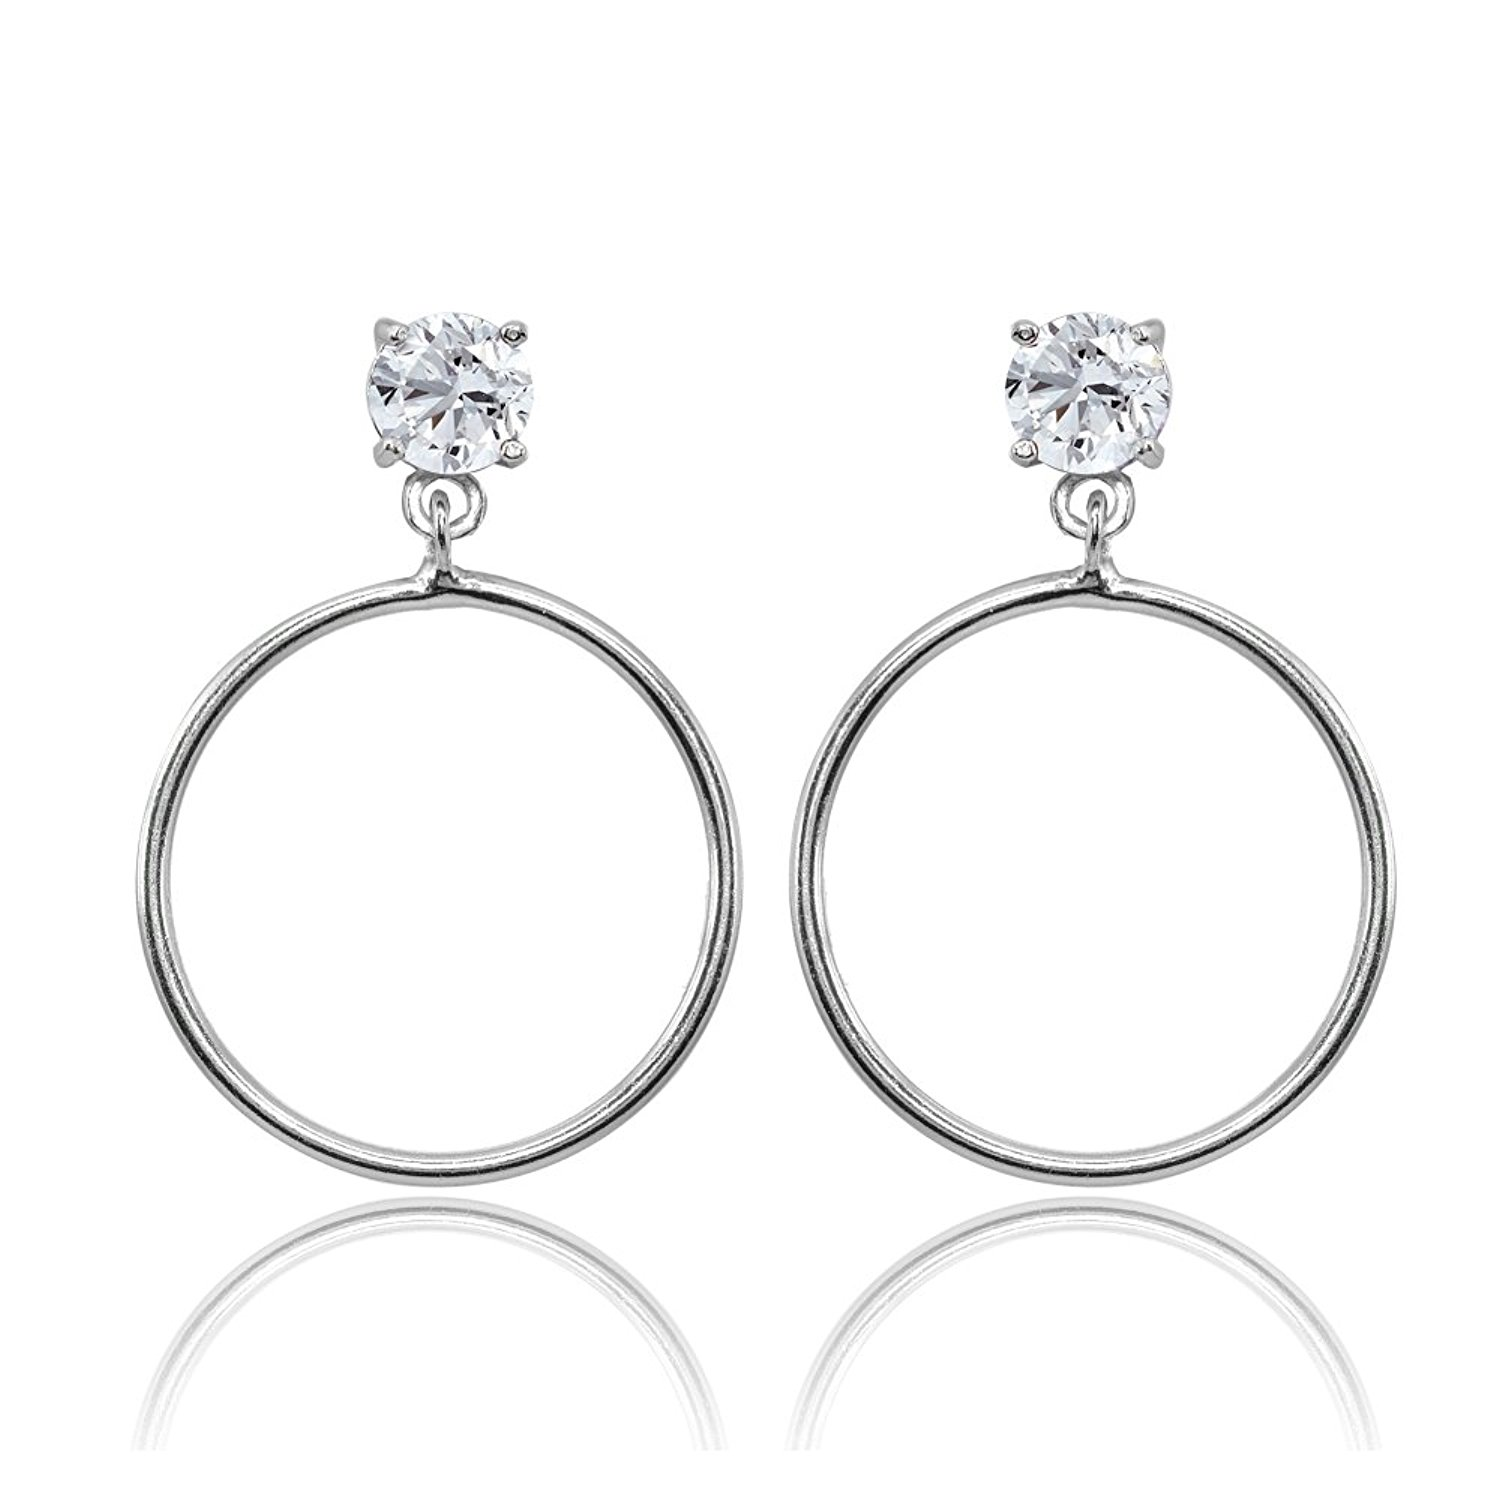 a0463aa08 Get Quotations · Sterling Silver Cubic Zirconia Dangling Round Hoop Stud  Earrings, 4mm, 5mm, 6mm